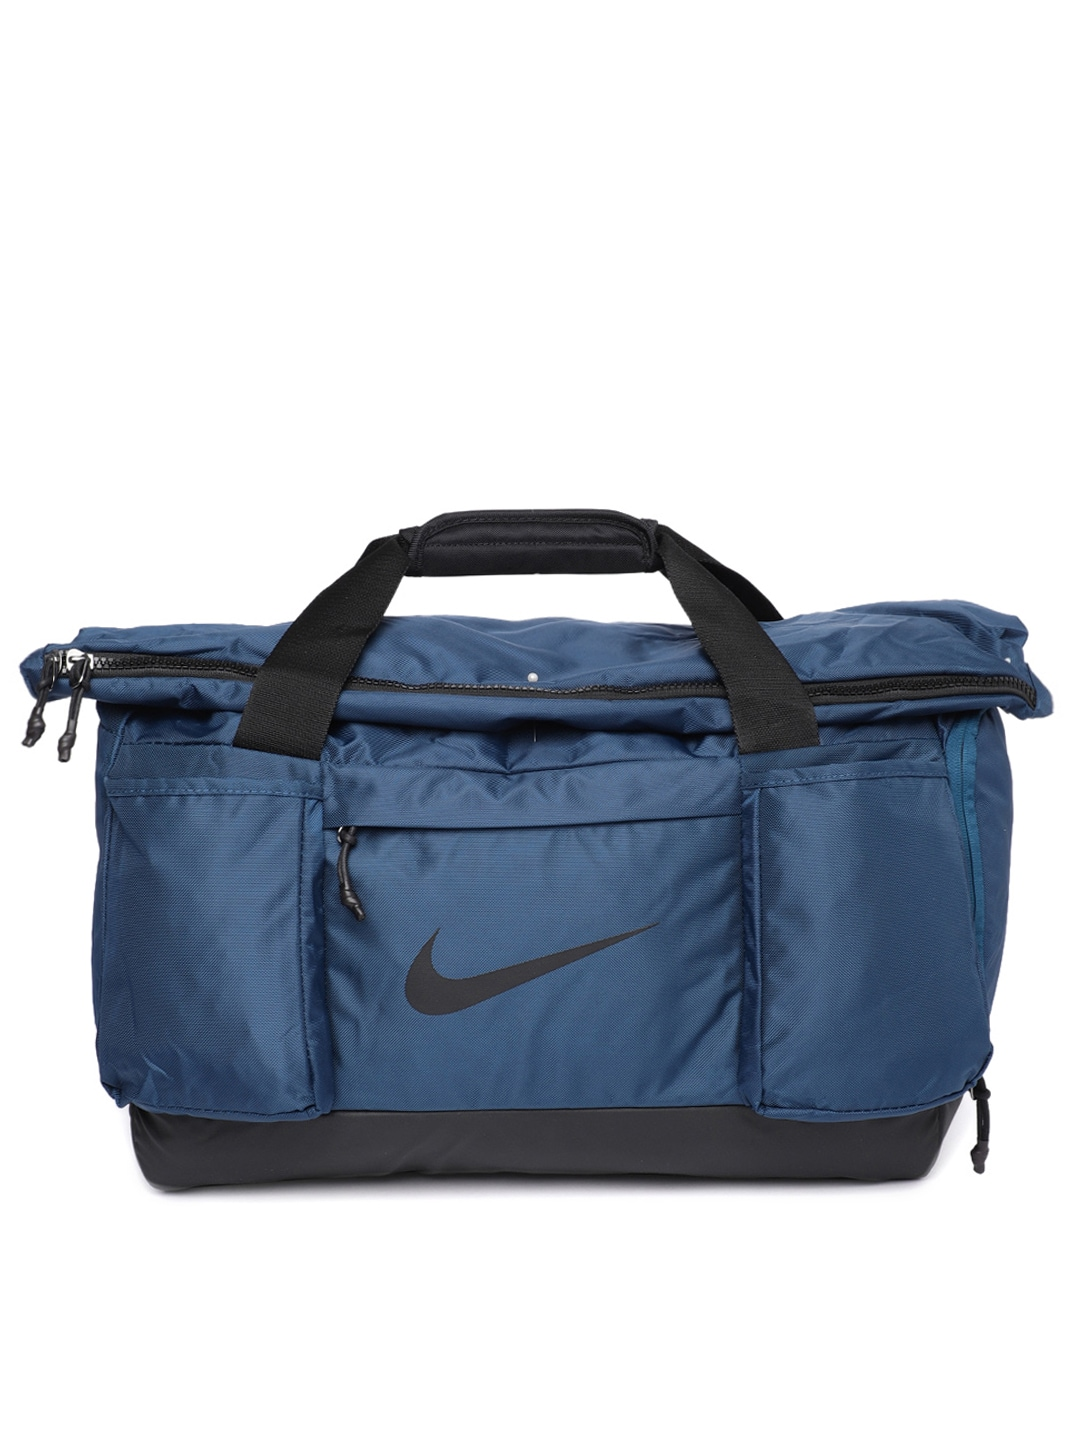 8ed108c5a0d4 Nike - Shop for Nike Apparels Online in India